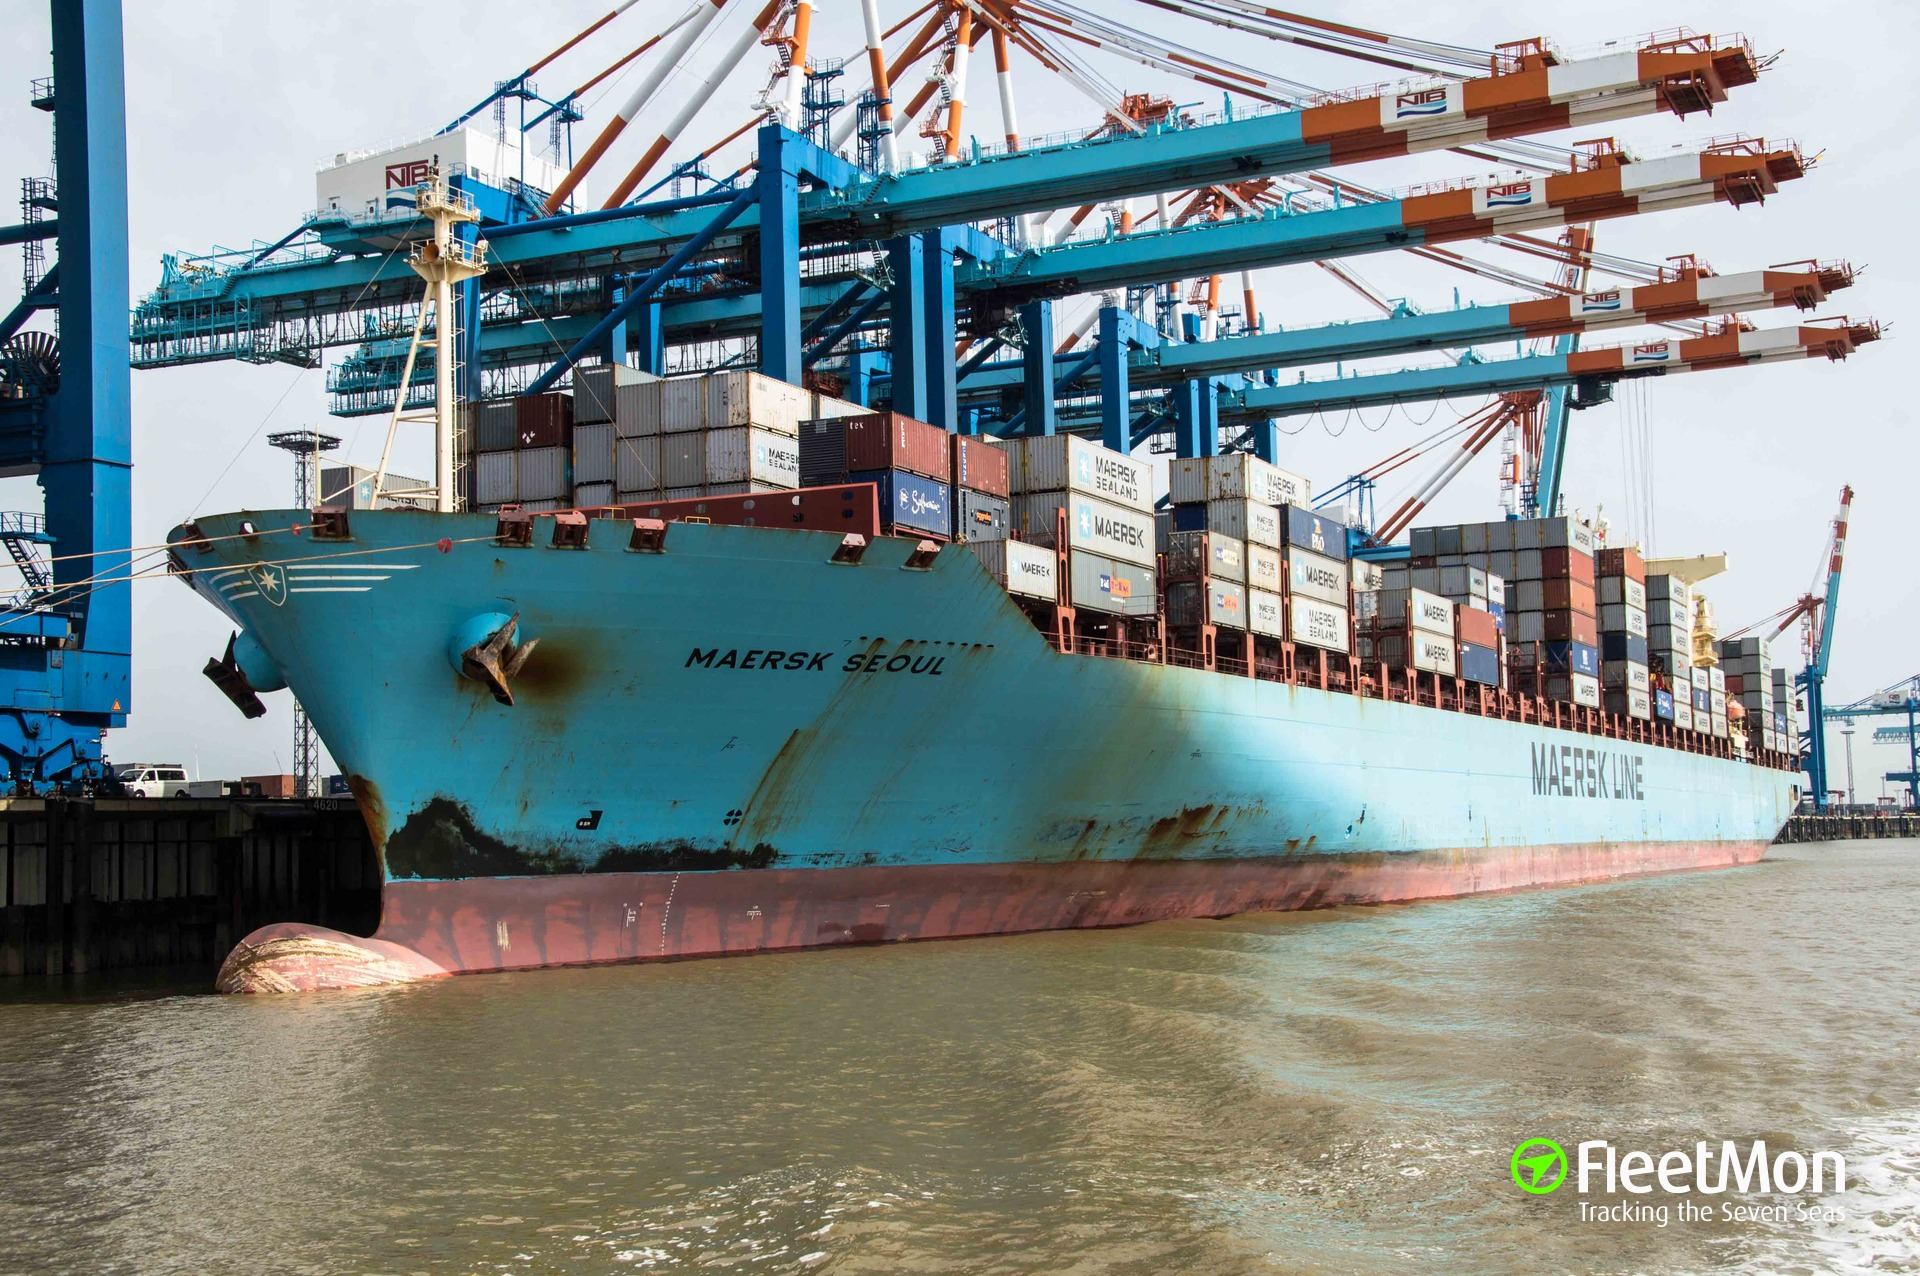 Mysterious explosion on board of boxship Maersk Seoul, forwarders remain in the dark